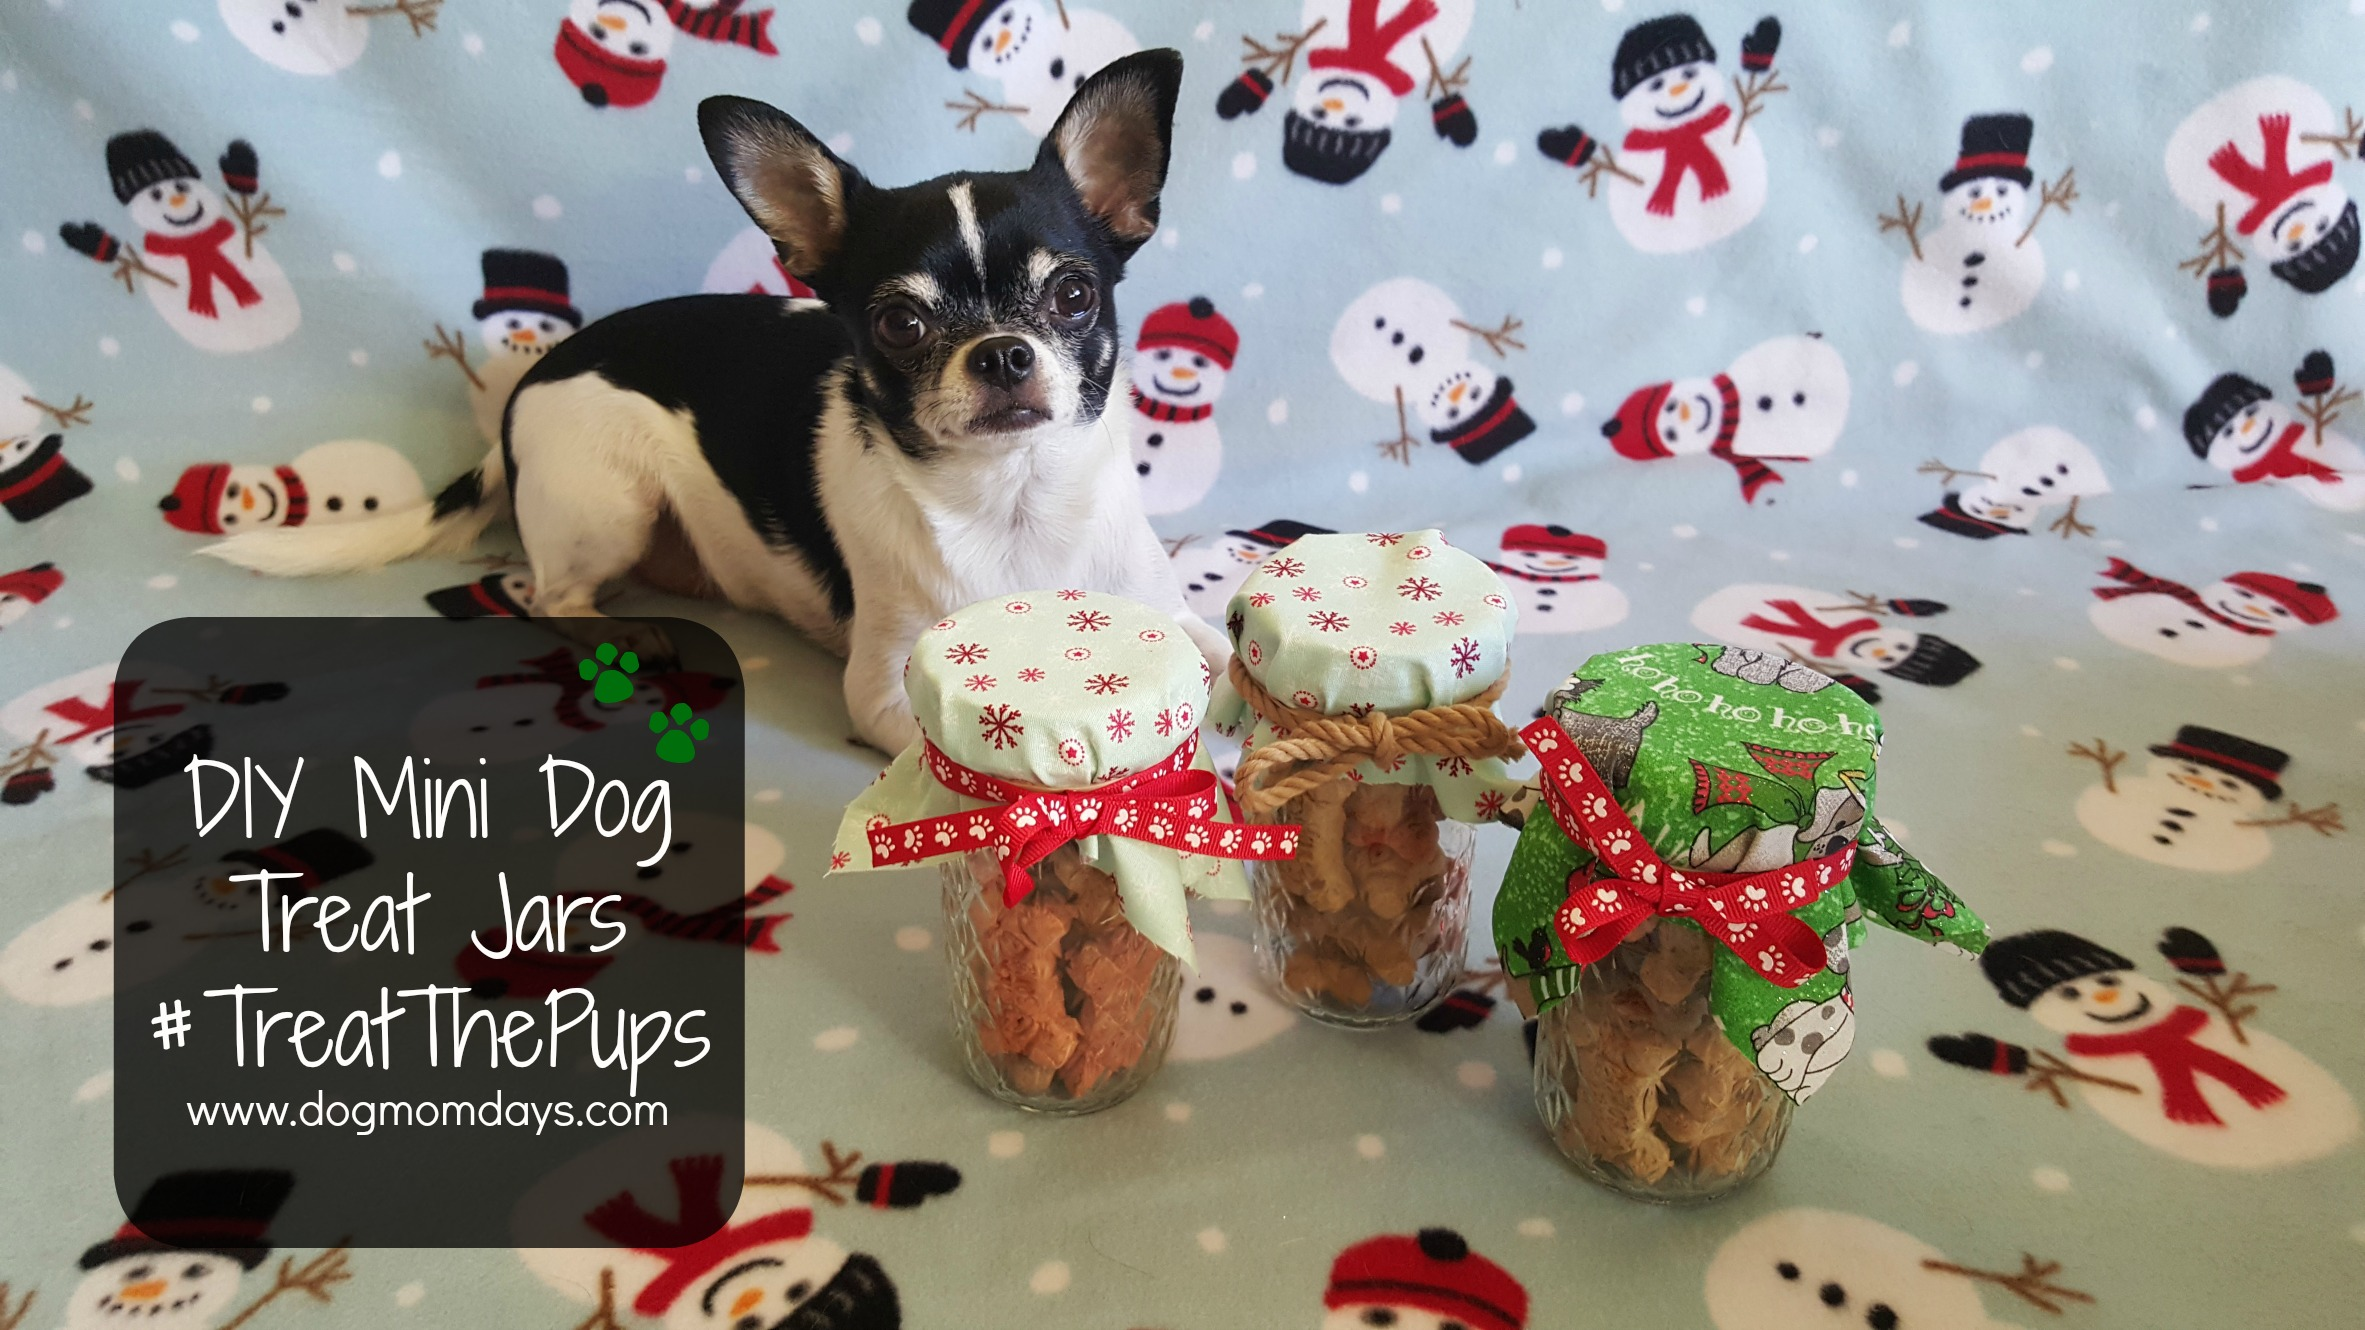 DIY Mini Dog Treat Jars